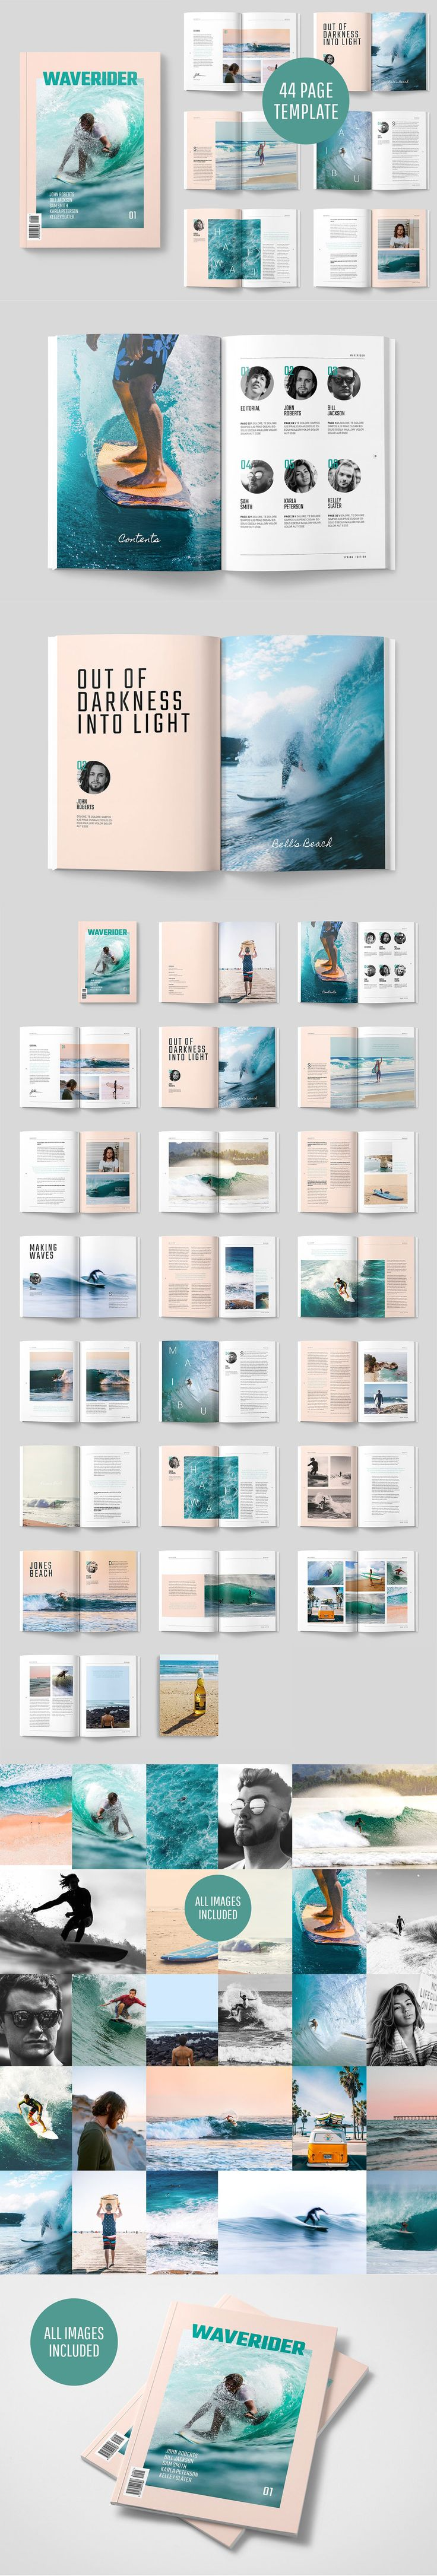 #Freebies : A modern, minimal, magazine, folio or #brochure #InDesign template. This layout has been designed as a Surfing #magazine, but could easily be turned into any sort of sport or adventure theme. ( #branding #creative #inspiration #webdesign #print #fashion #photography #bloggers #adventure )